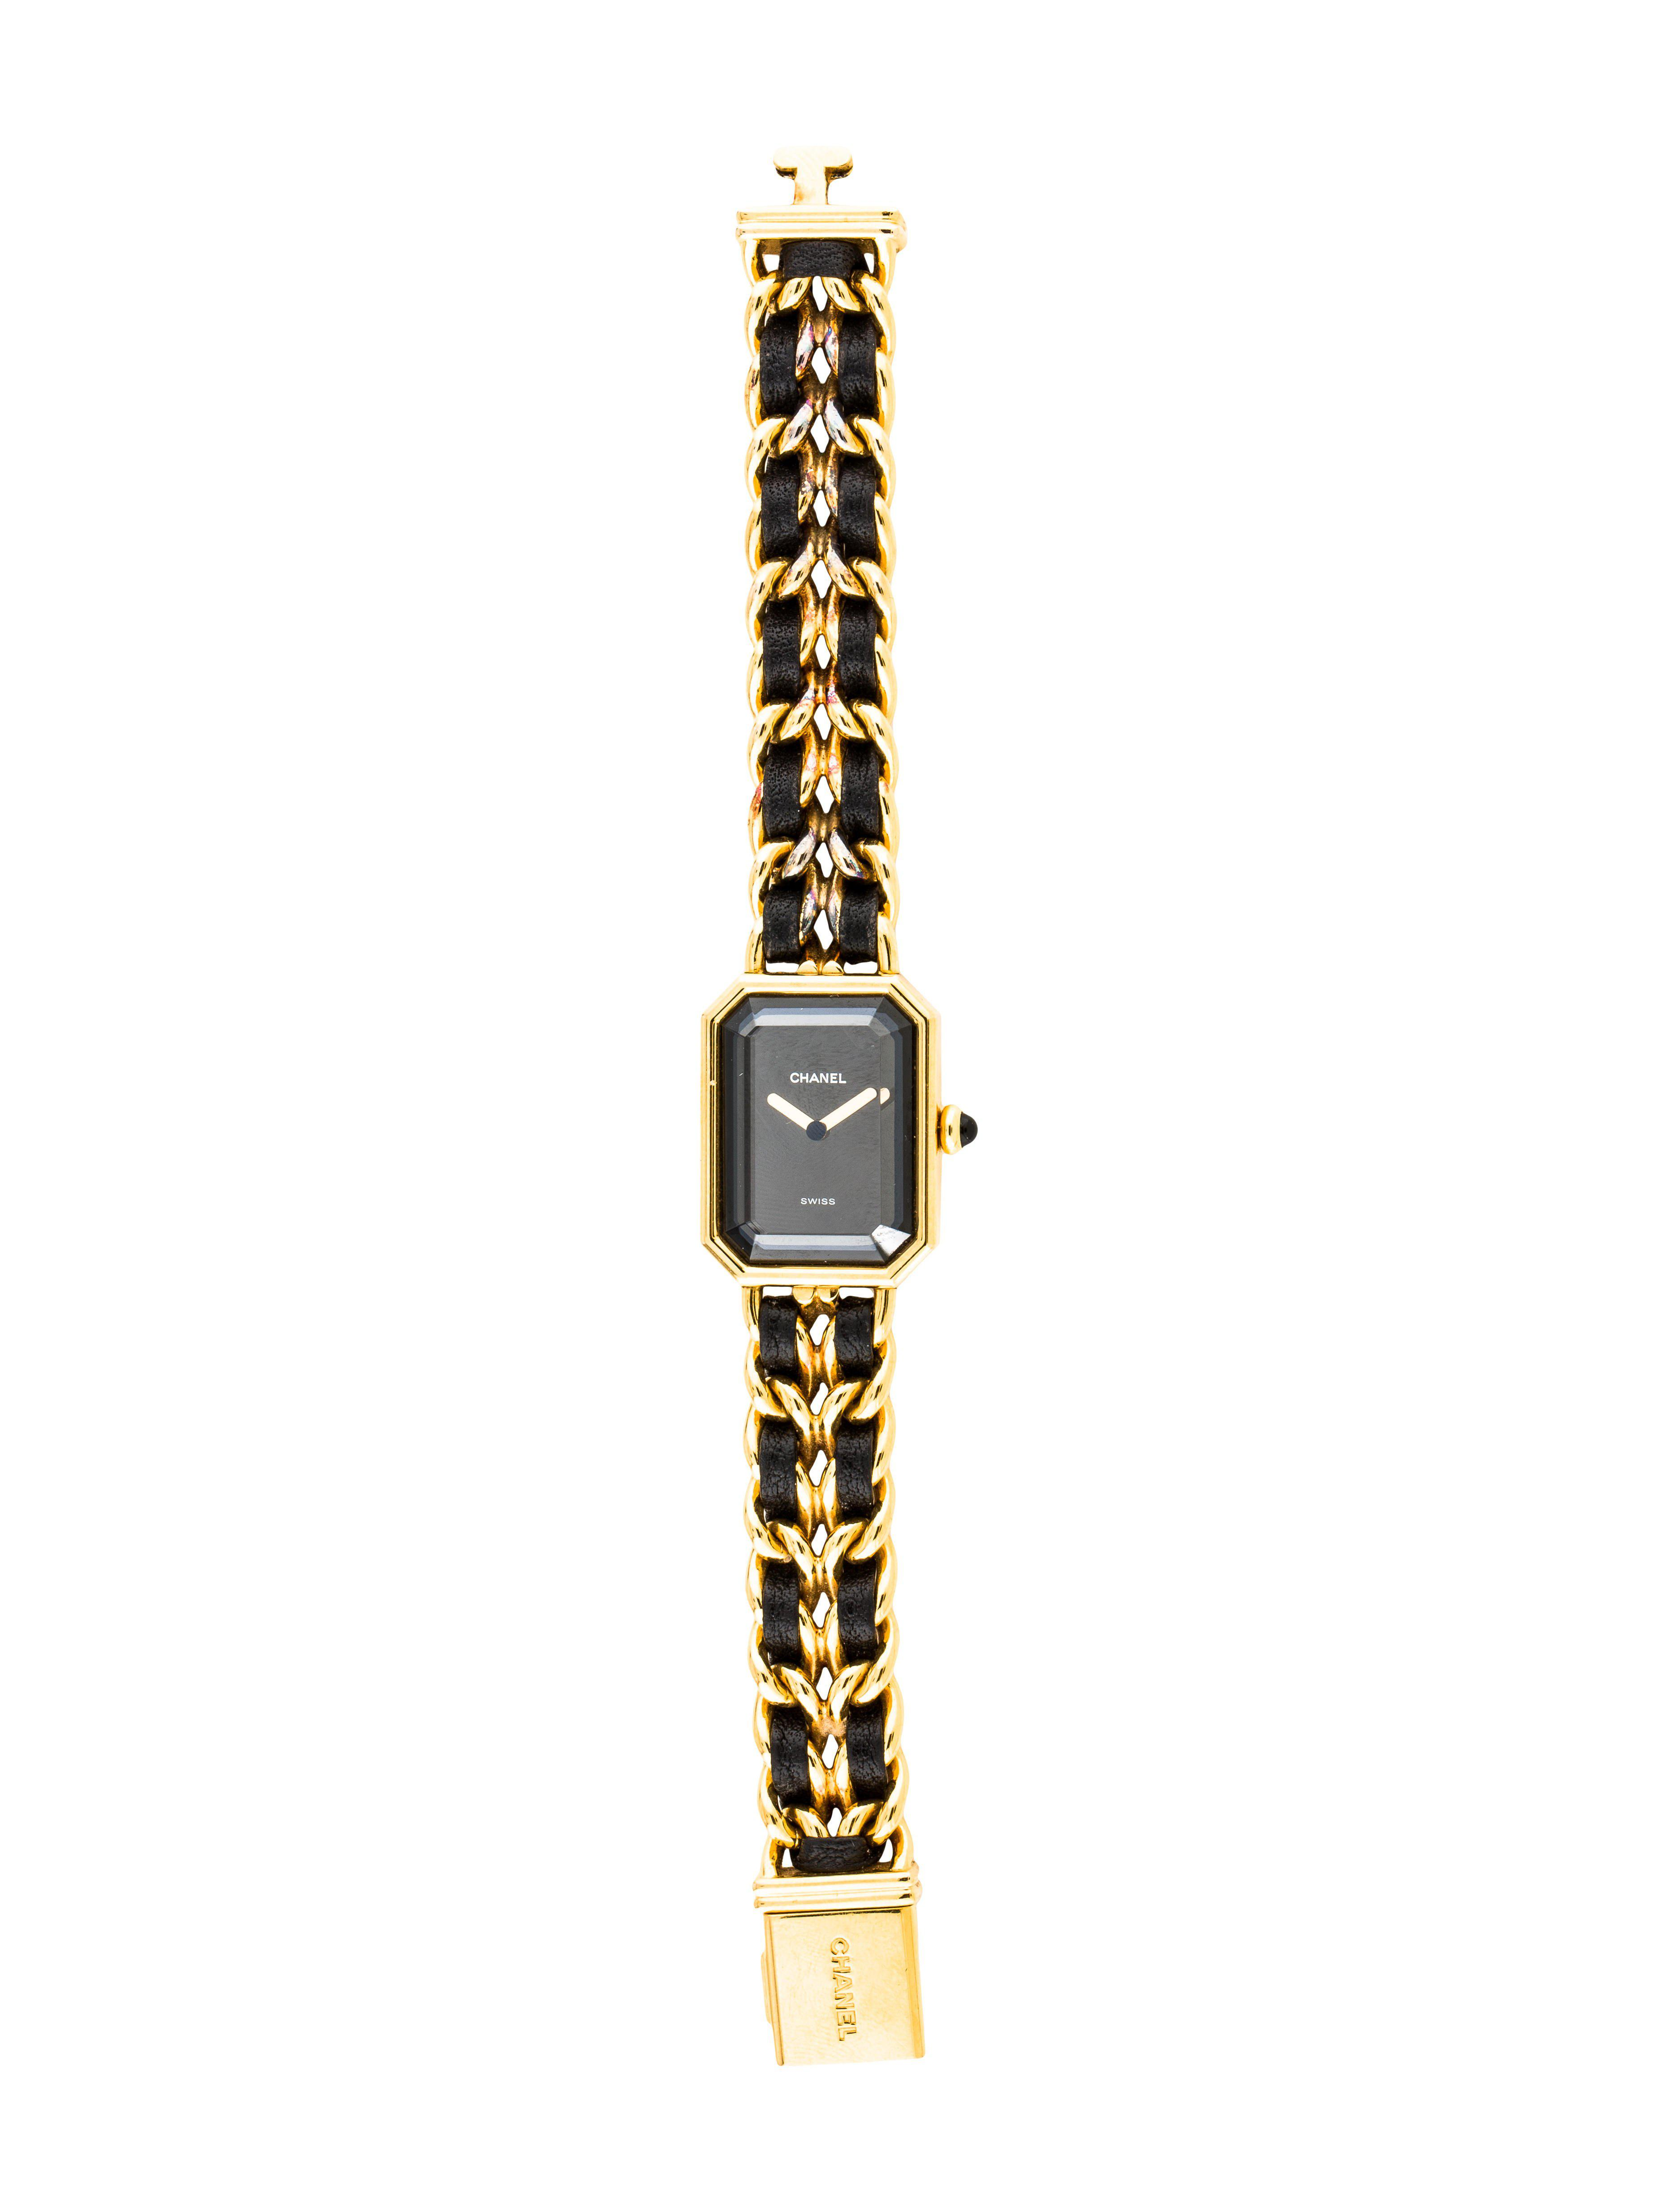 Lyst Chanel Premire Rock Watch Gold Tone In Metallic Fossil Es3954 Tailor Multifunction Light Brown Leather Gallery